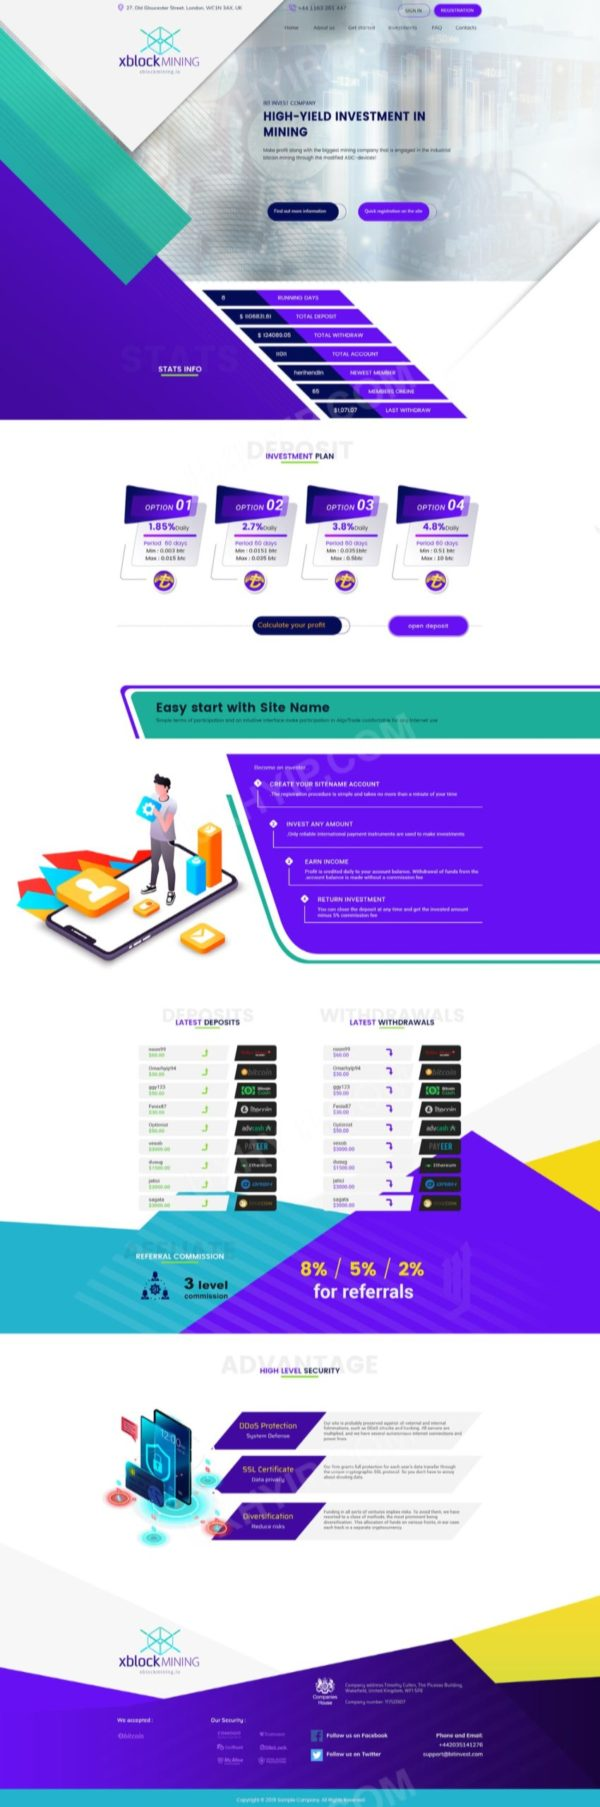 HYIP Template - Investment Business Template XblockMining 126